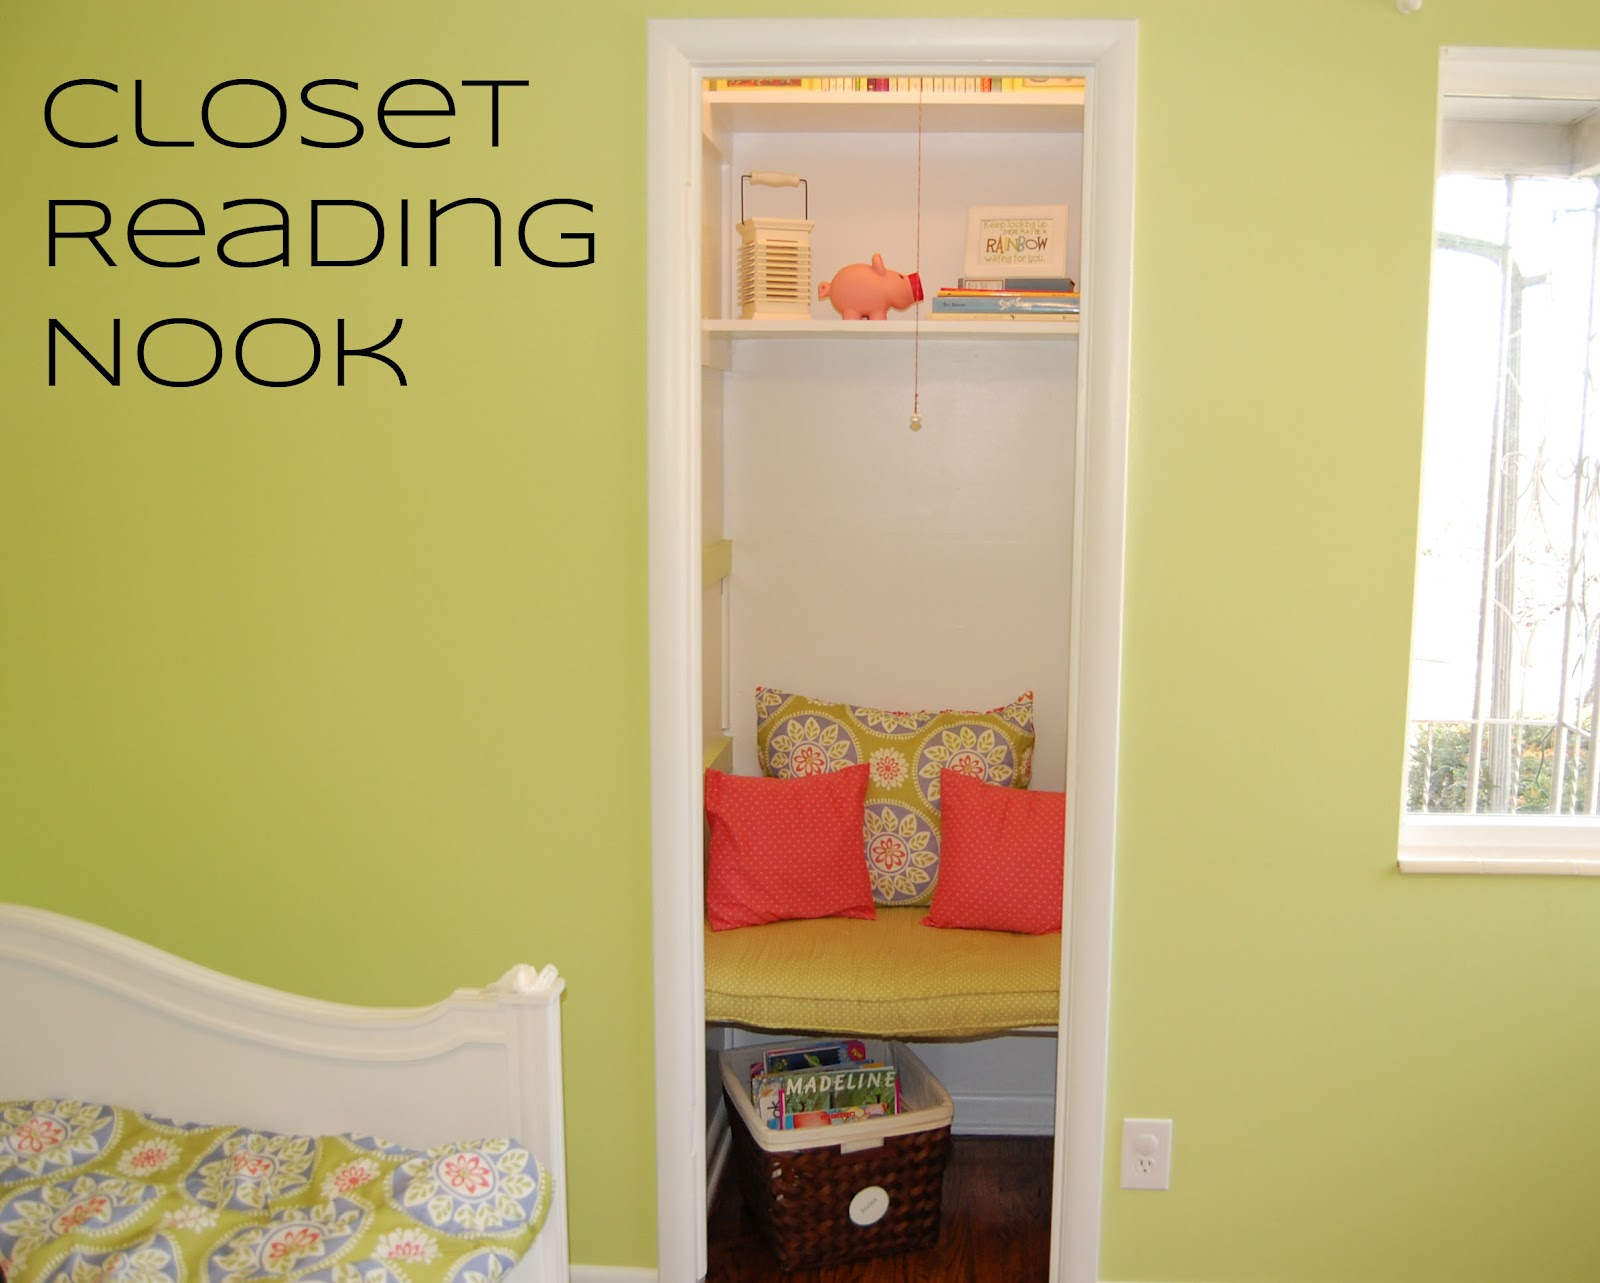 createinspiremotivate: Closet Reading Nook